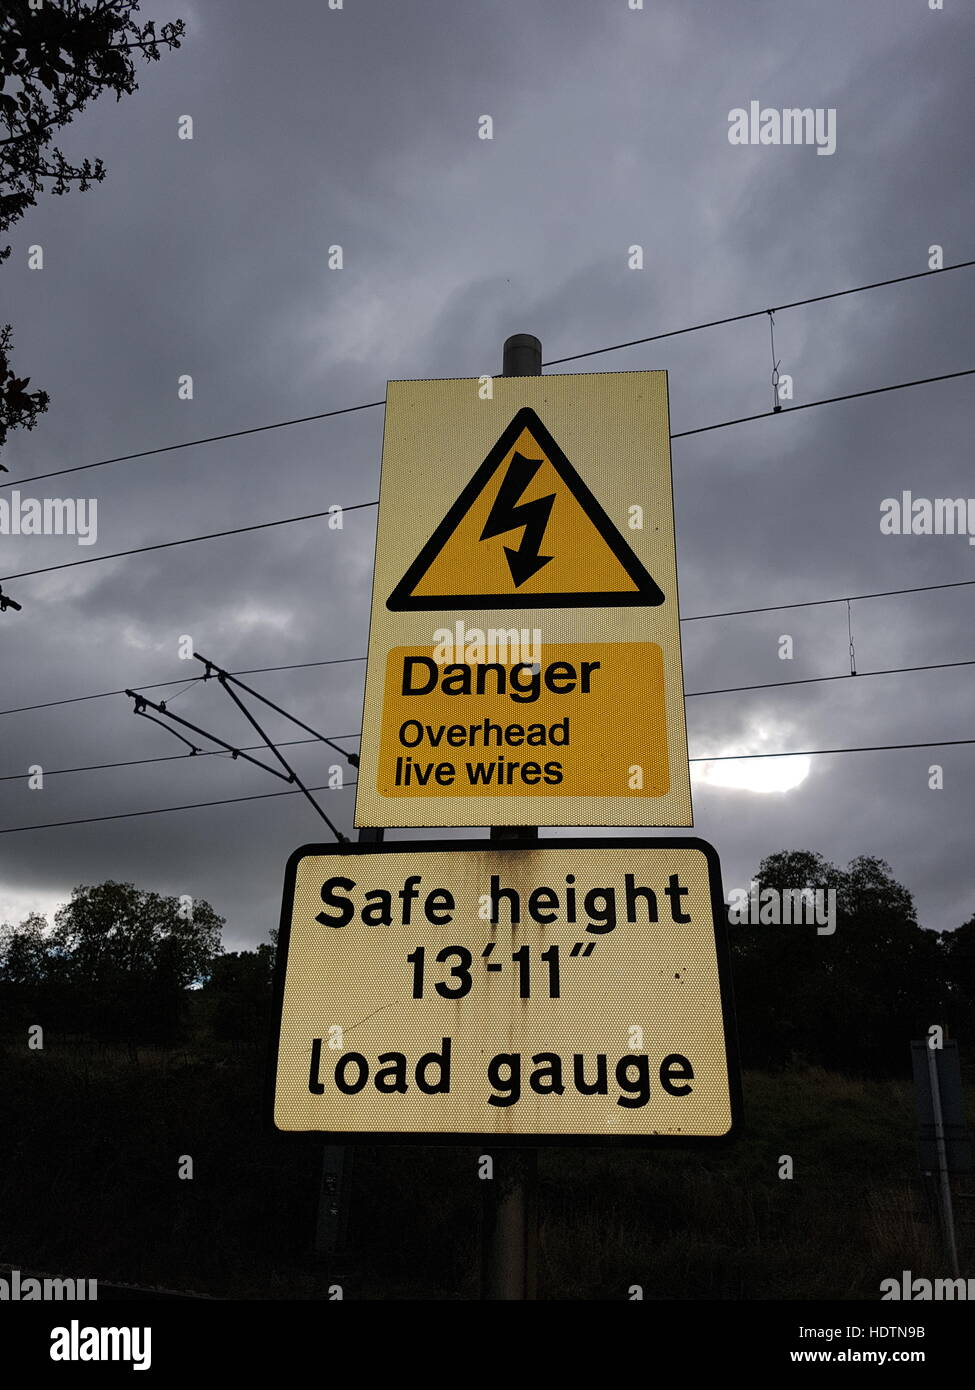 Danger live cables,Warning signs - Stock Image